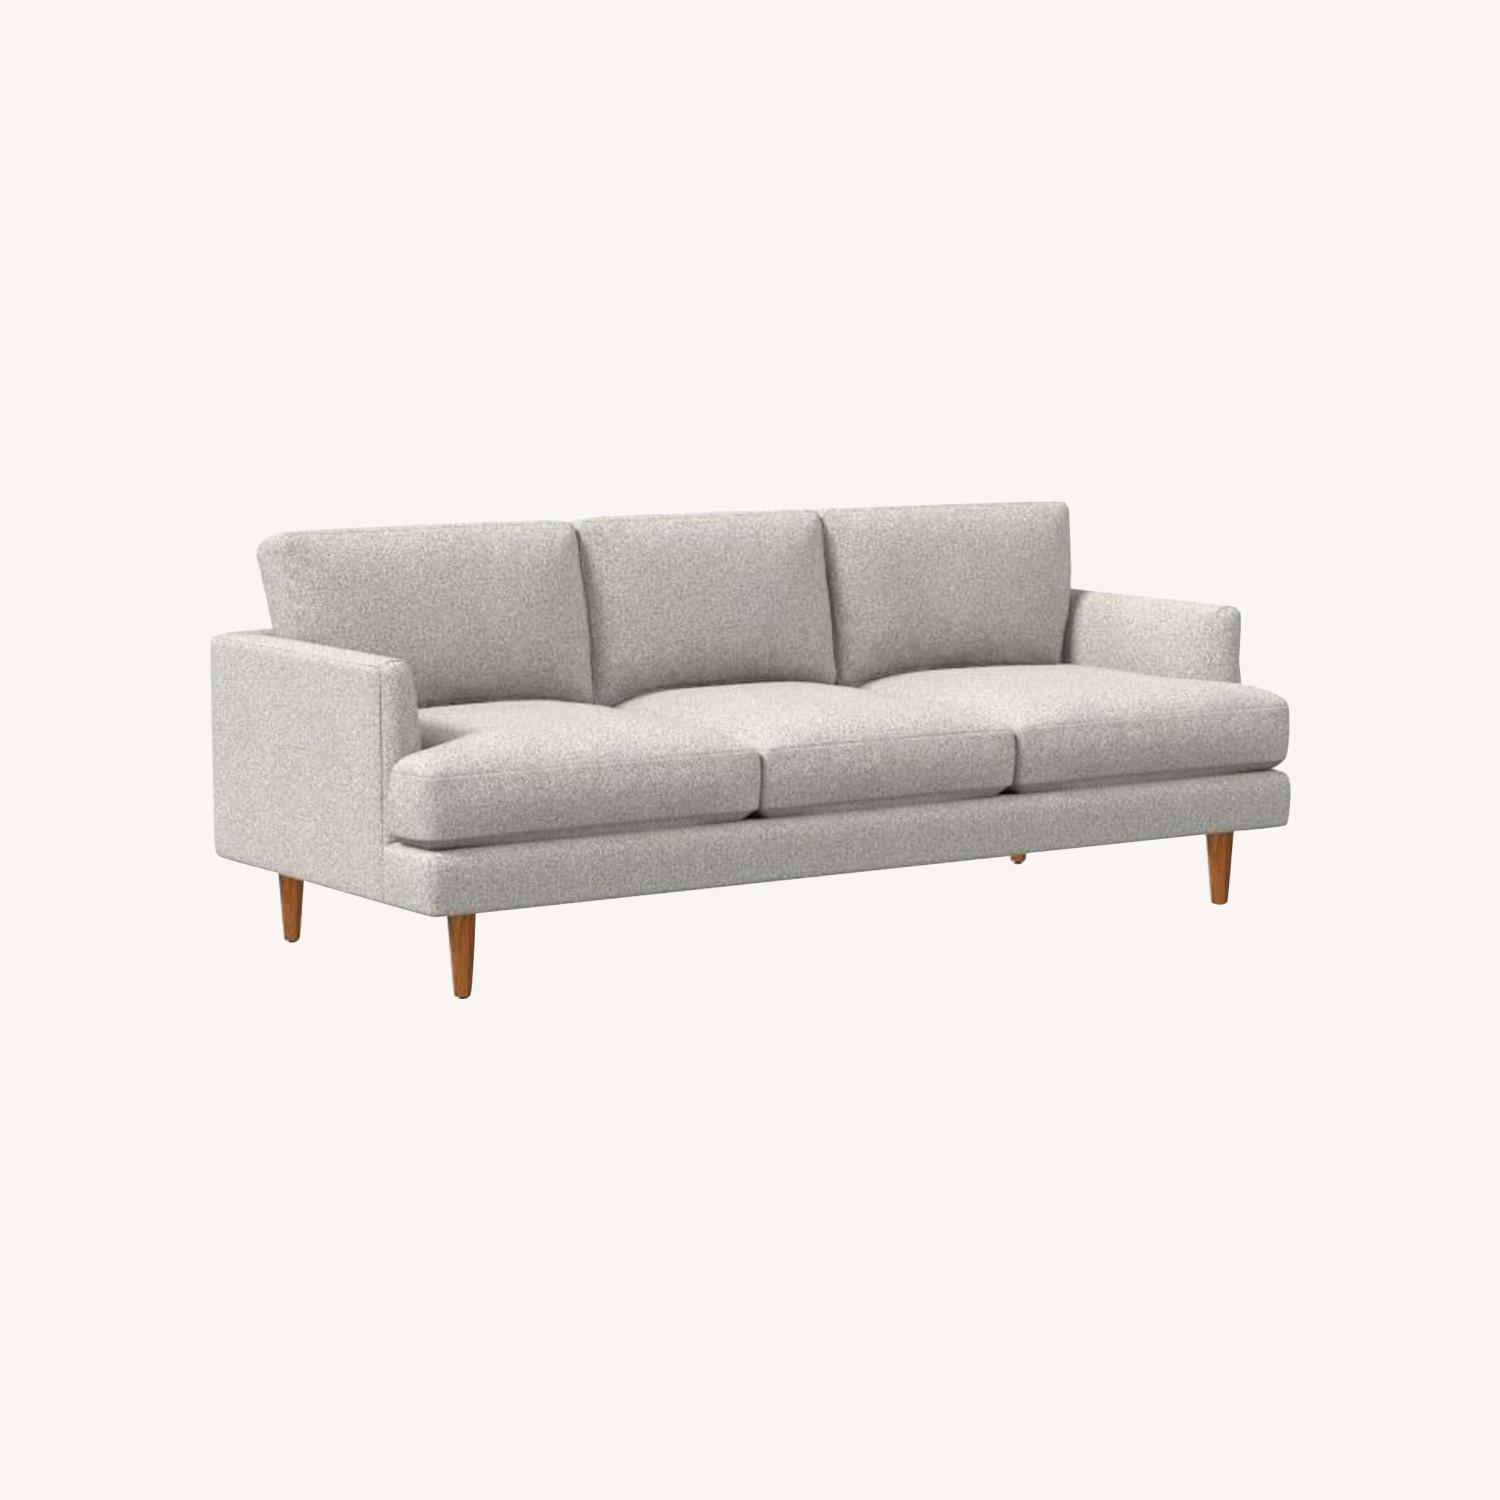 West Elm Haven Loft Sofa  - image-0